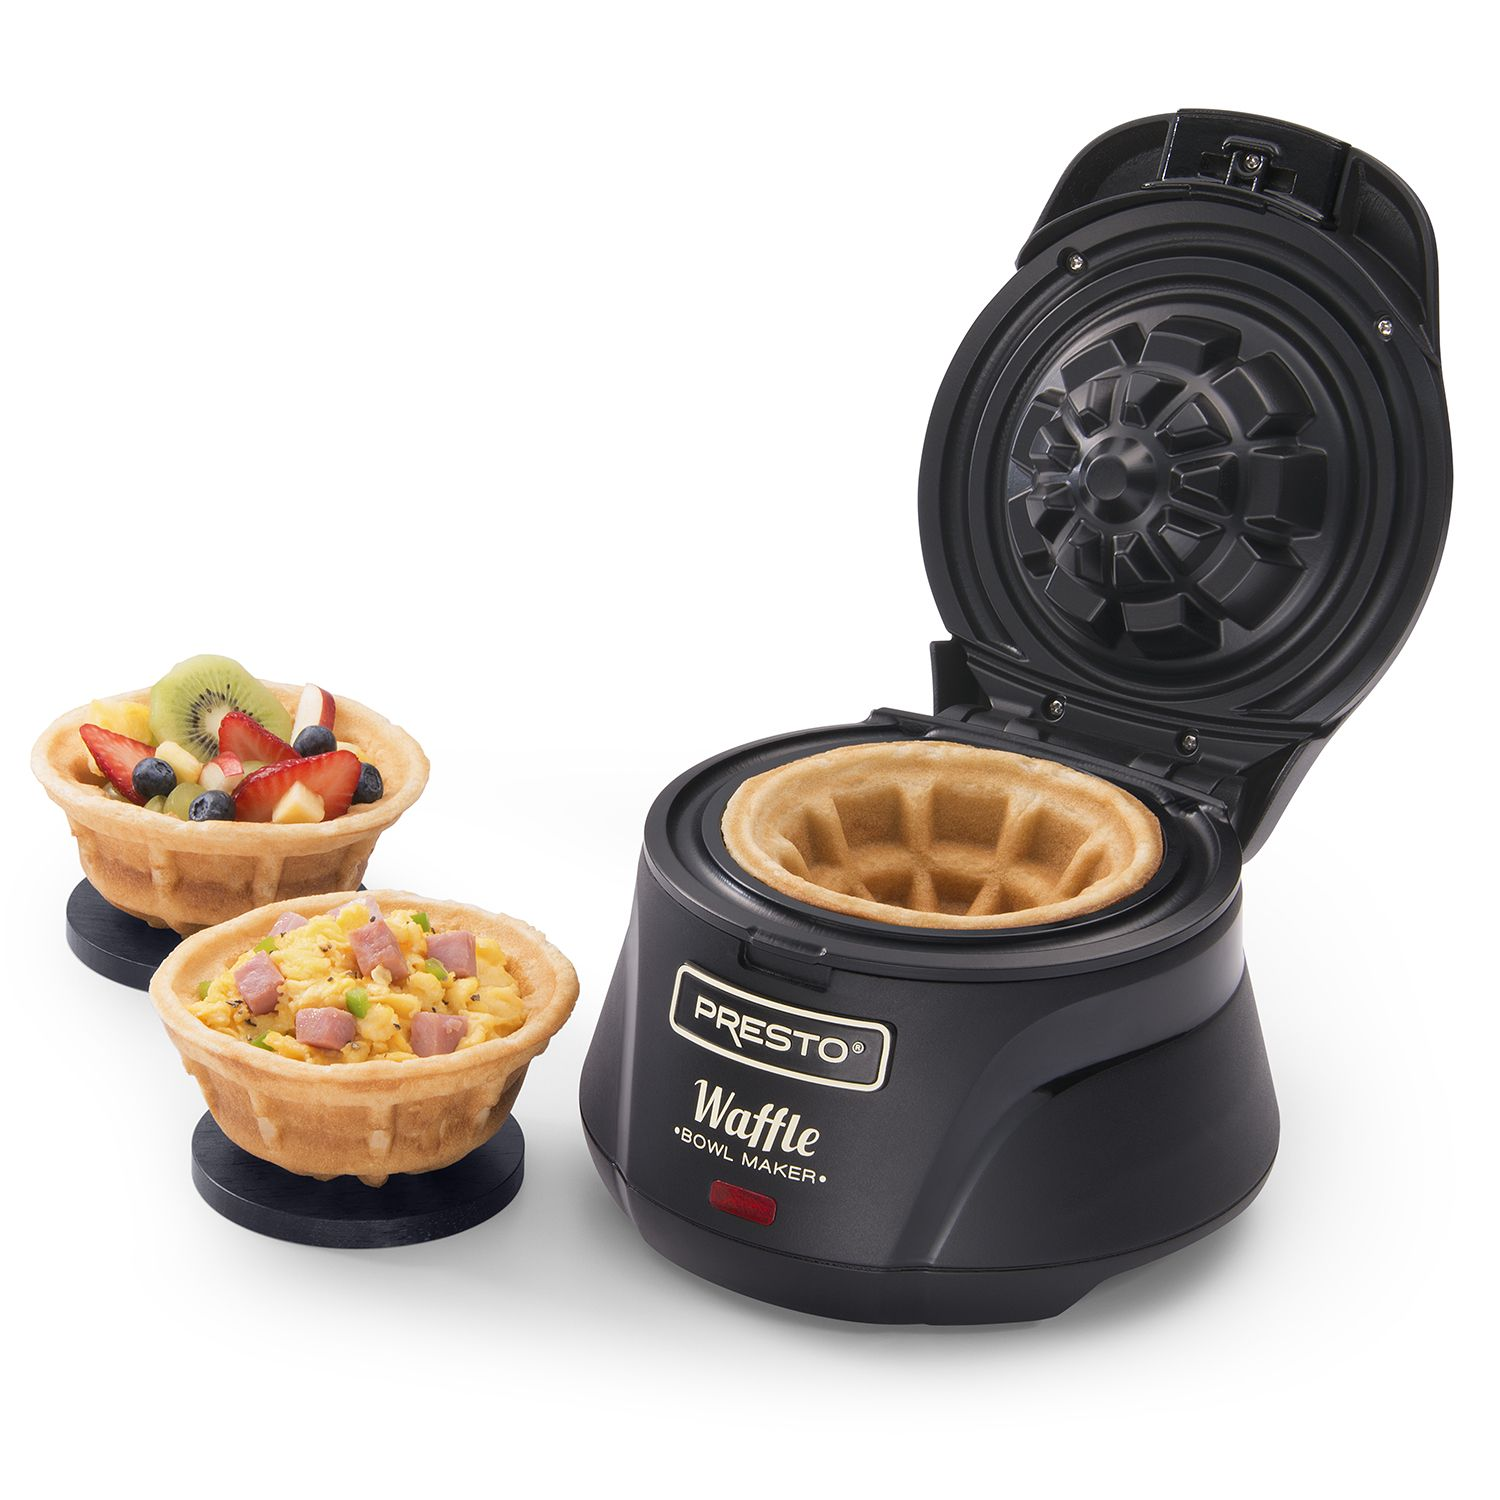 Shop Presto Belgian Waffle Bowl Maker and other name brand Waffle & Egg Cookers Home & Appliances at The Exchange. You've earned the right to shop tax free and enjoy FREE shipping!